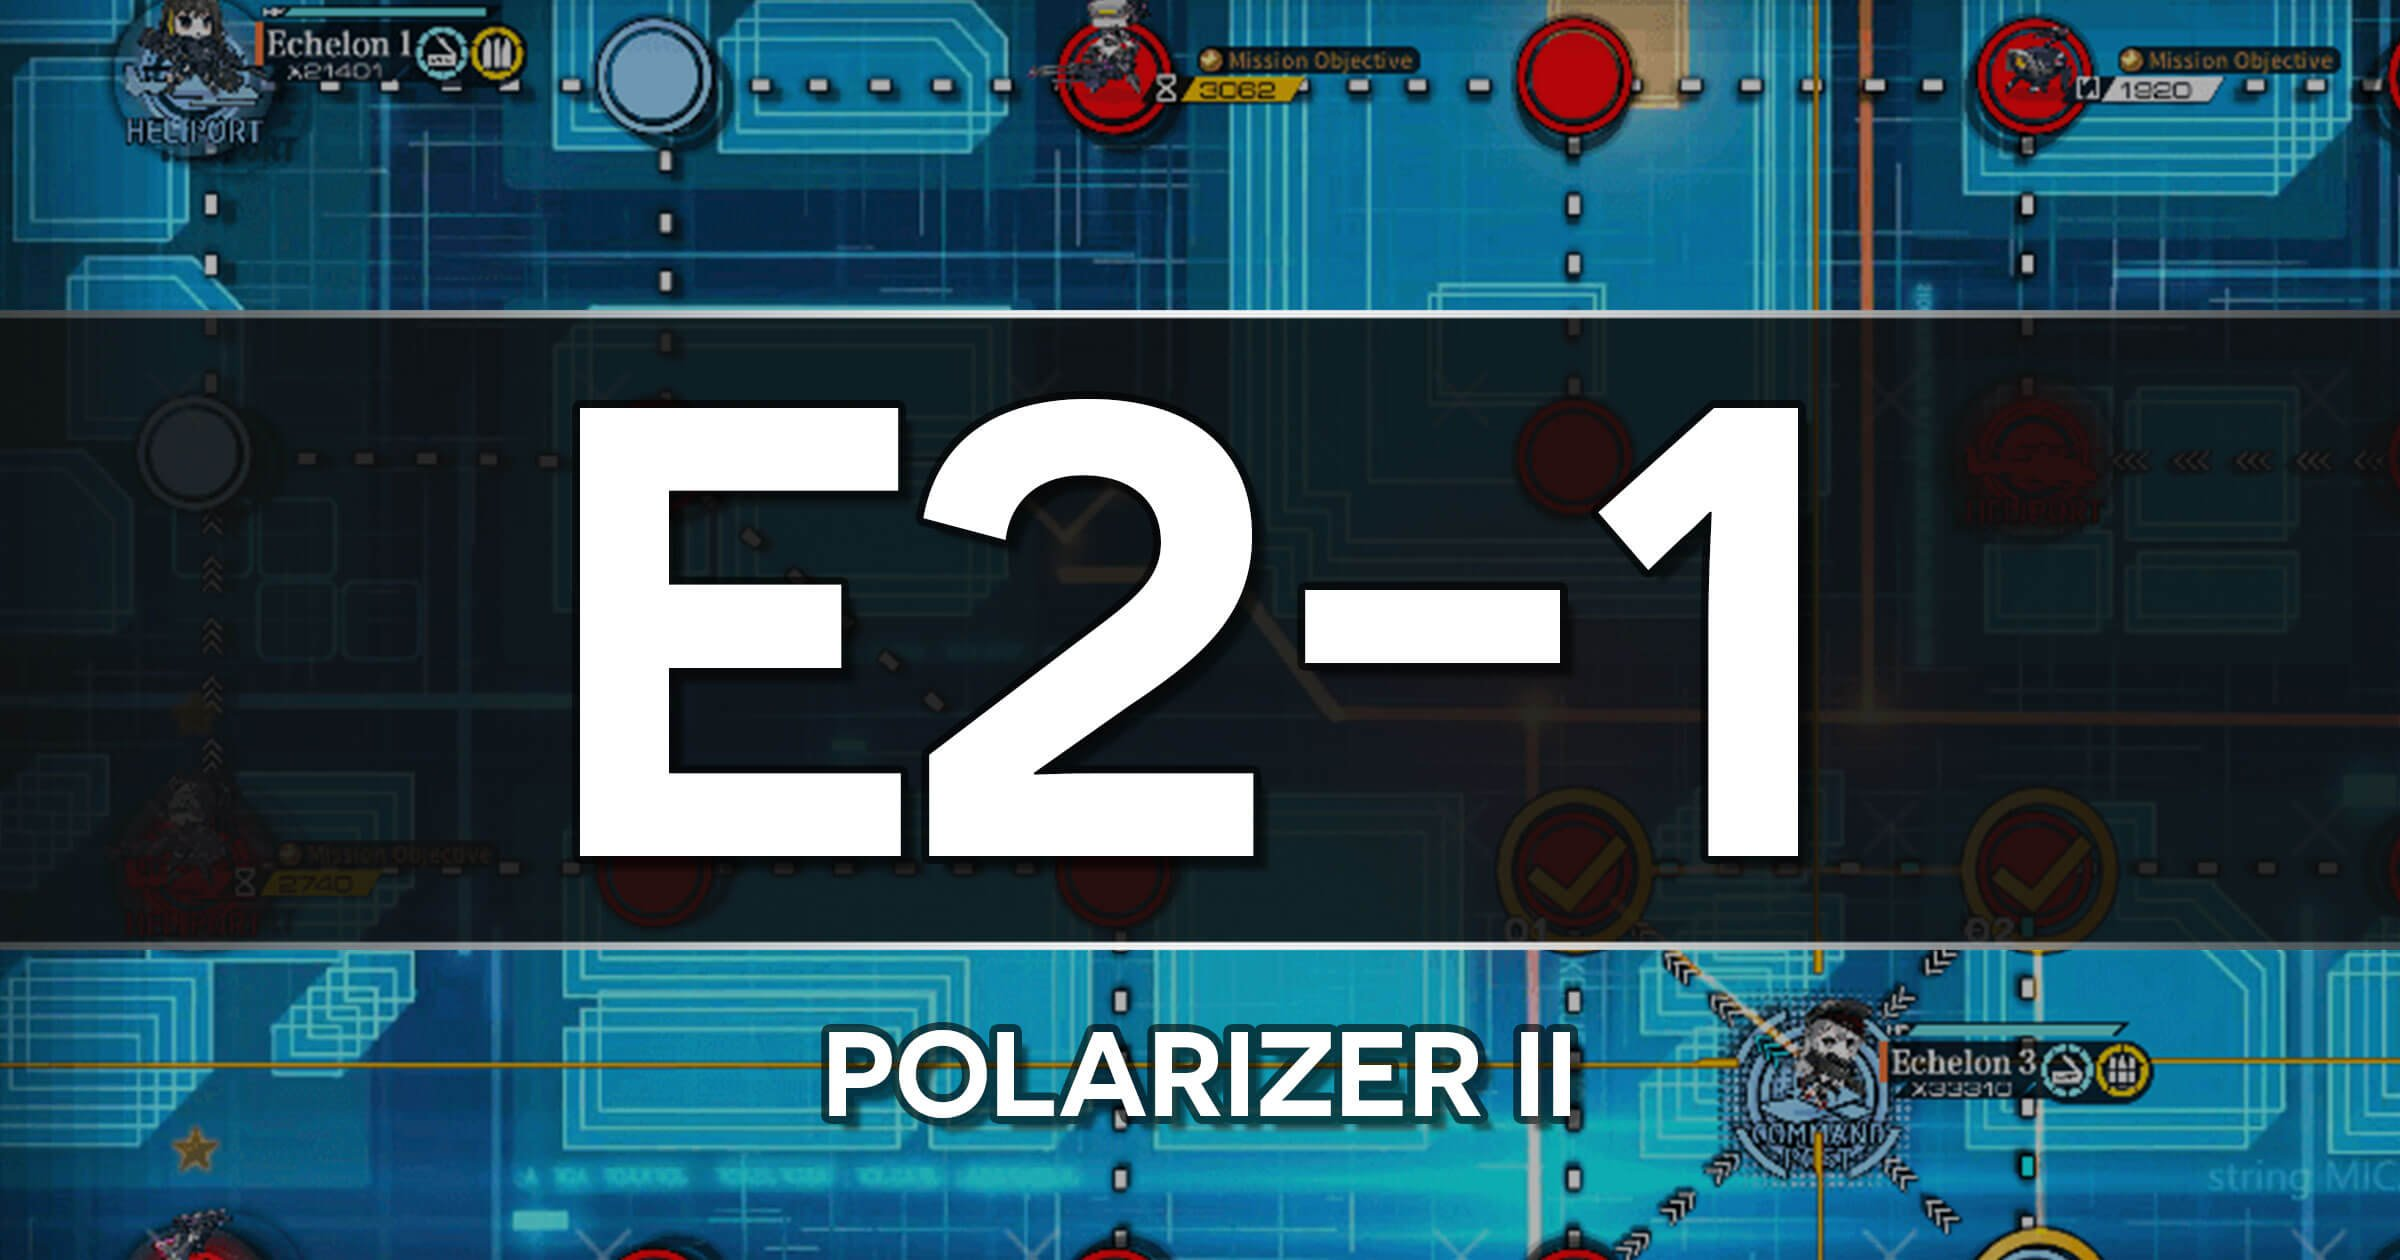 A guide to the Girls Frontline Polarized Light Event stage E2-1: Polarizer II